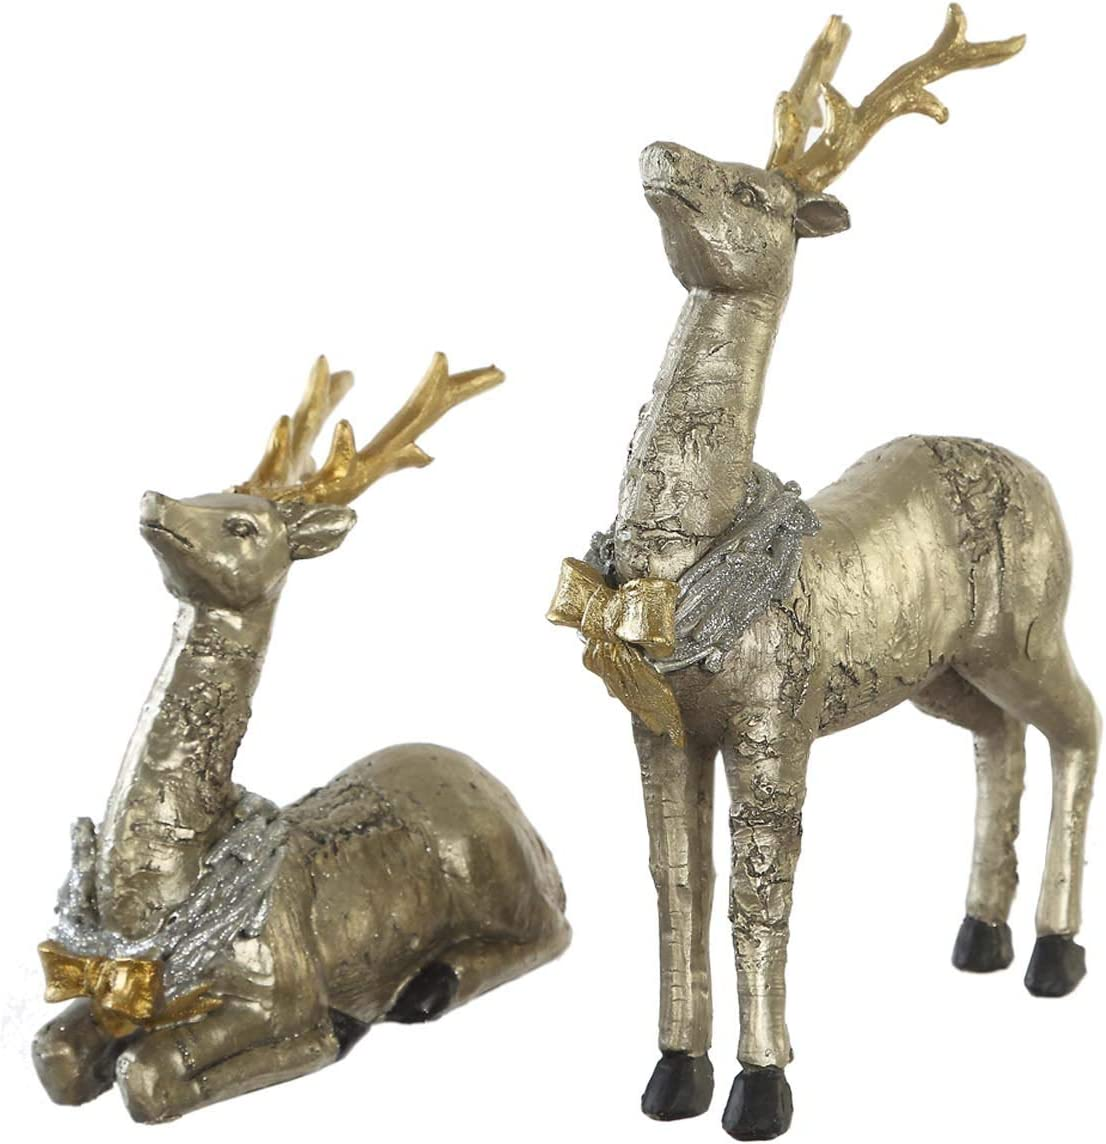 Holiday Glitter Reindeer Standing Table Decor Home Decoration Reindeer Figurines Standing Figurines Indoor Decorative Craft Ornaments Sculptures Deer,2 PCS